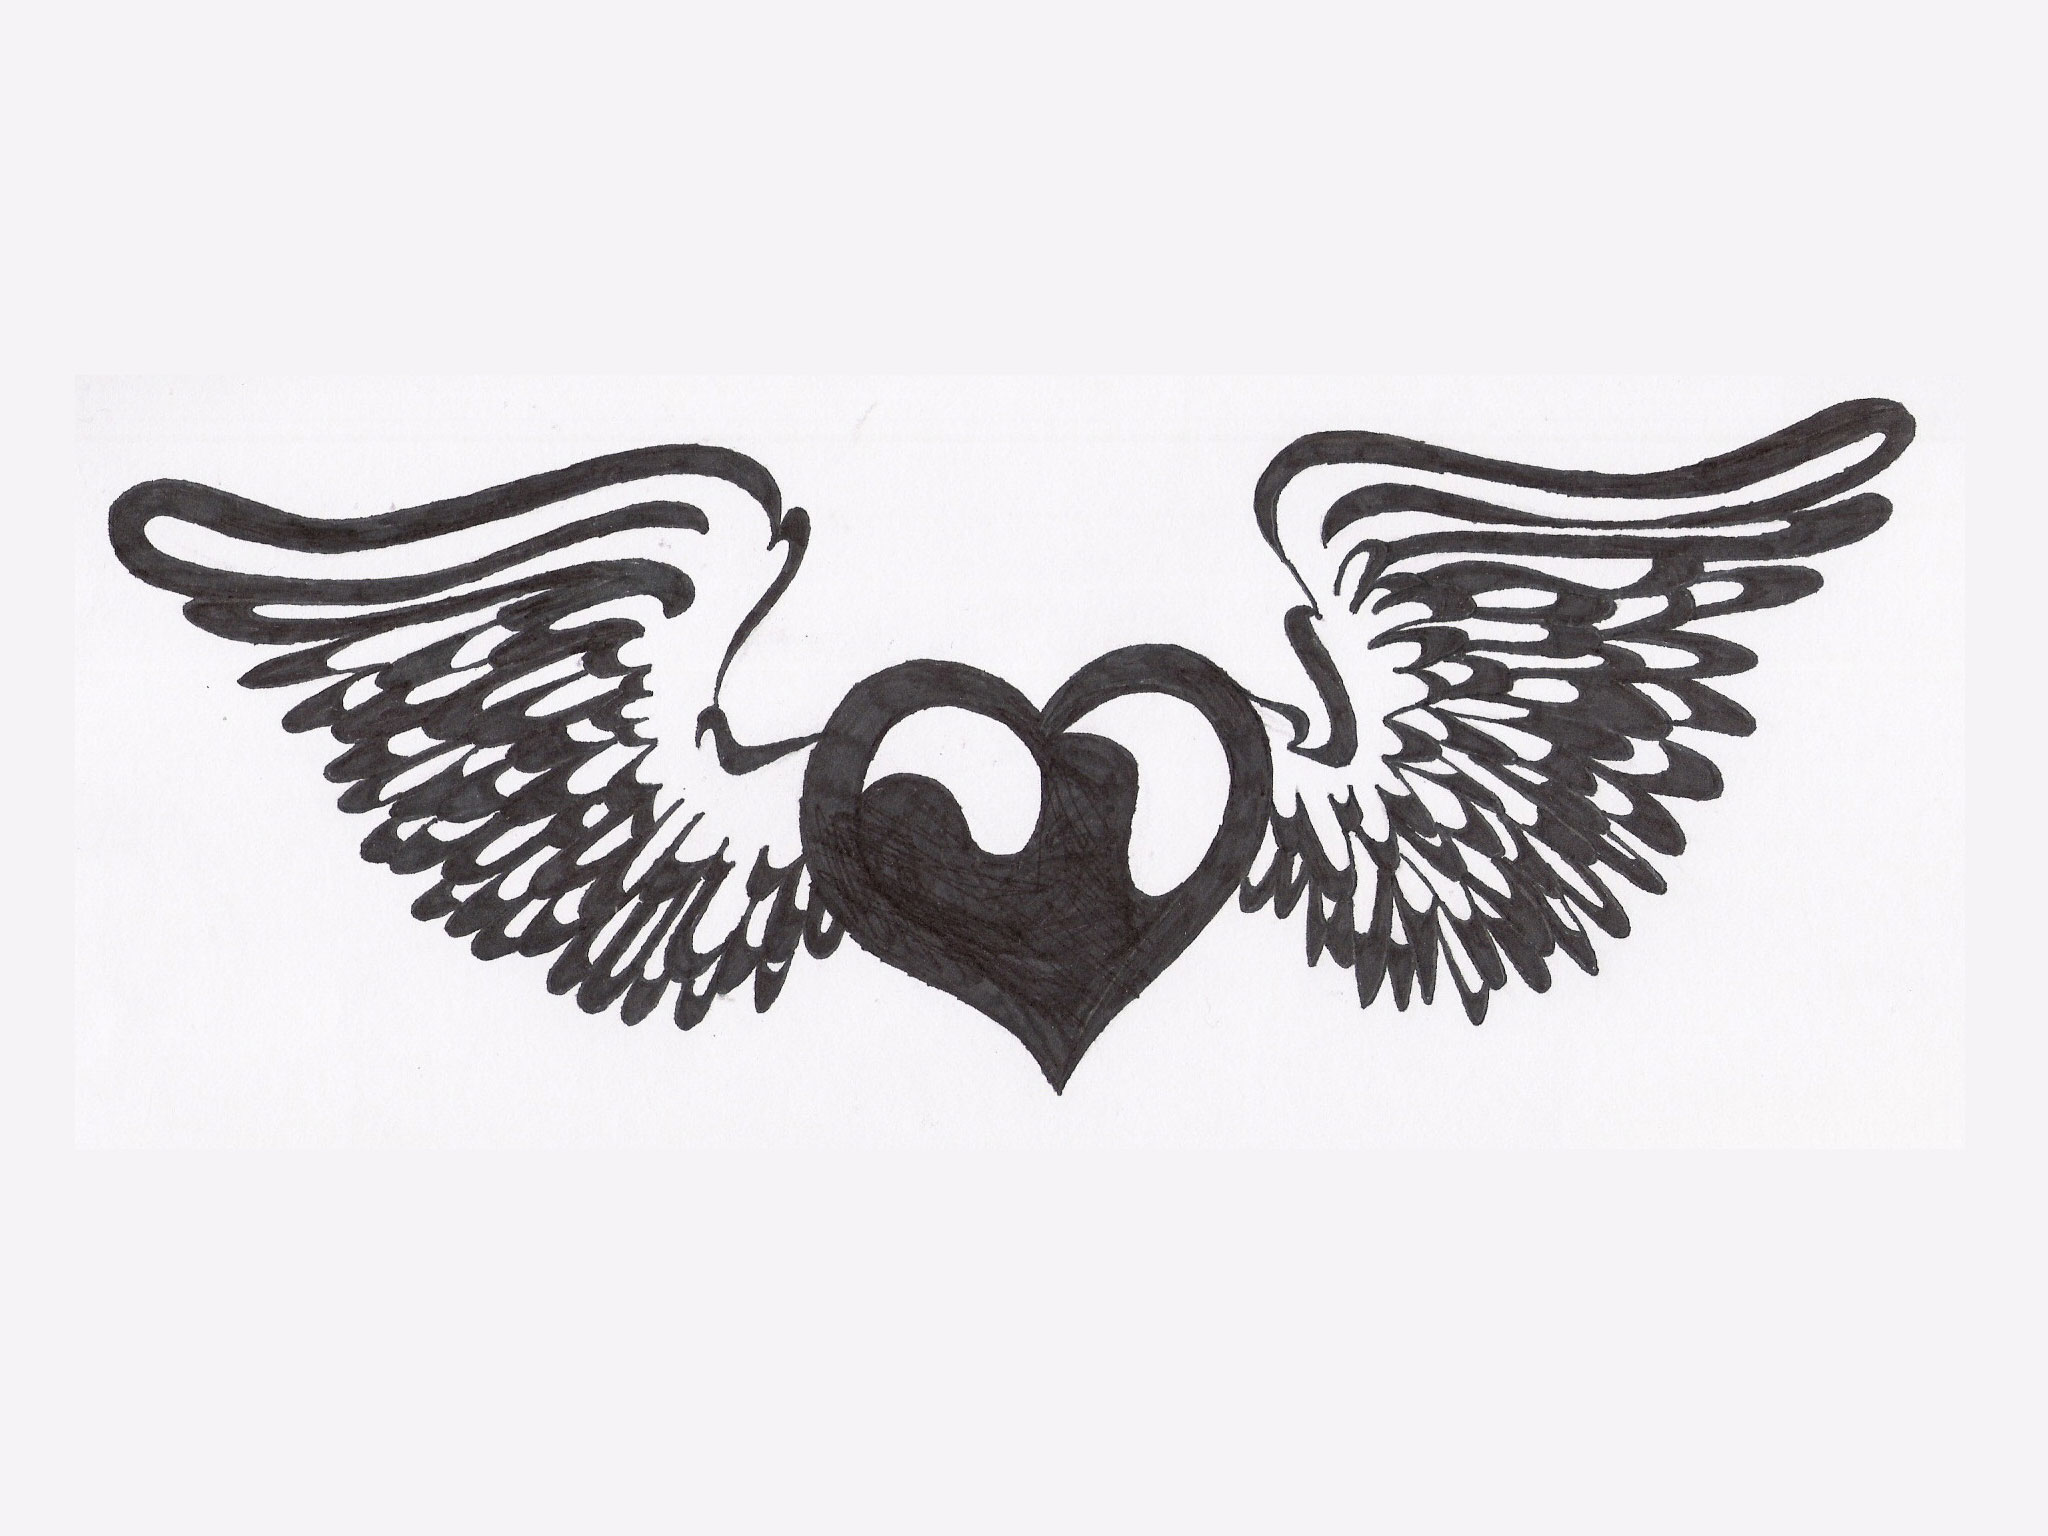 Wings clipart black heart Heart Pinterest White heart Black